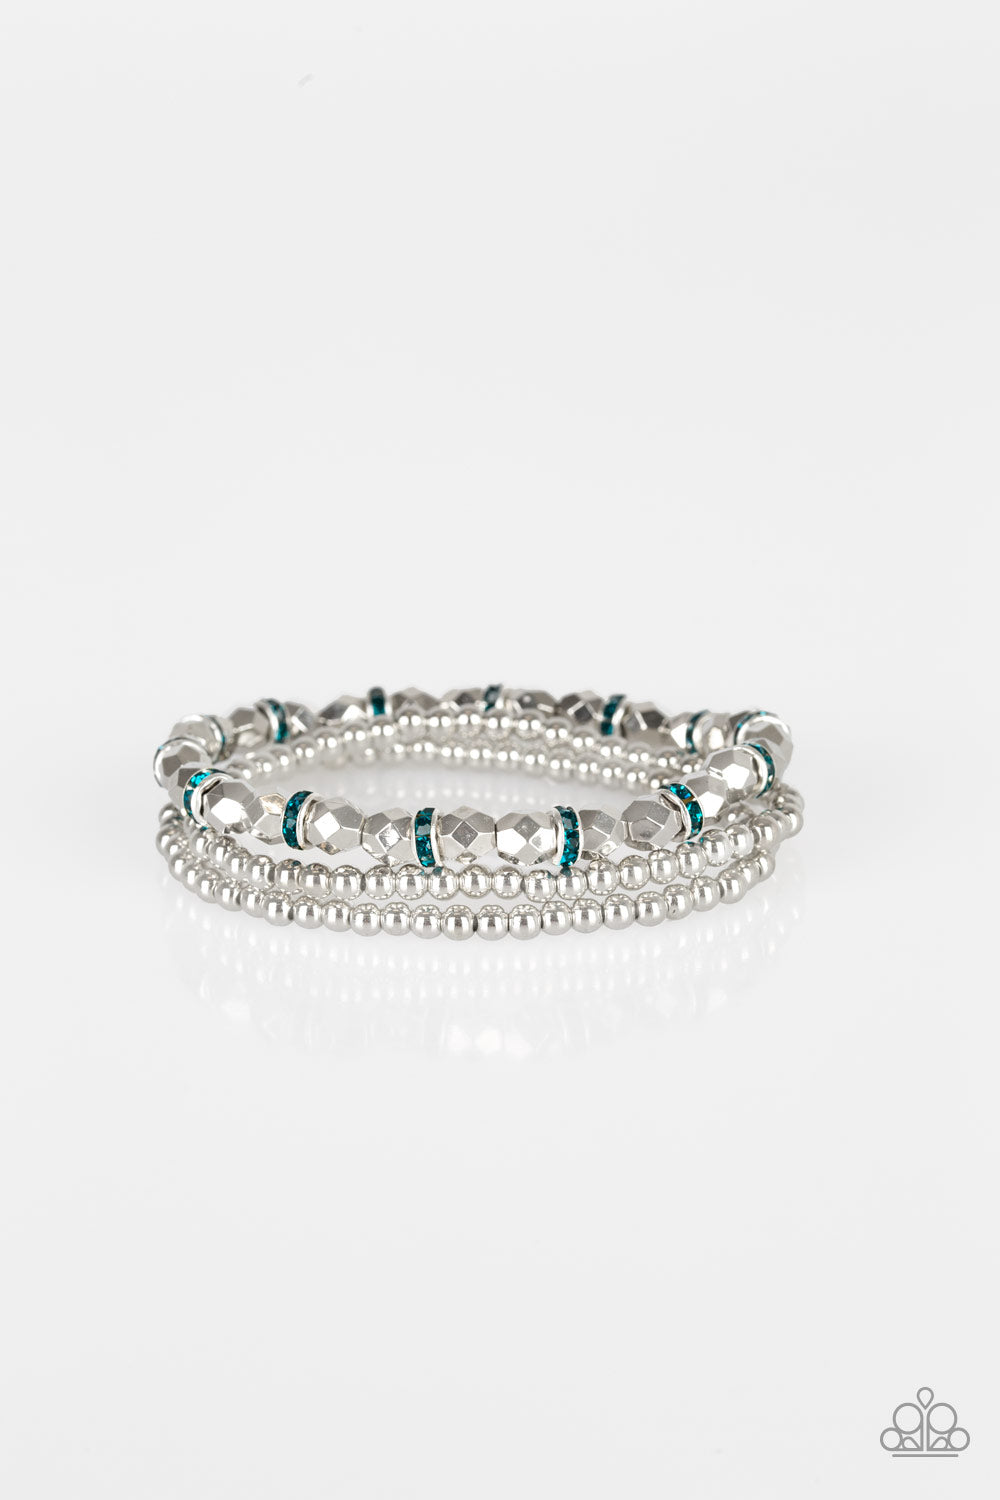 Let There BEAM Light - Blue Bracelet